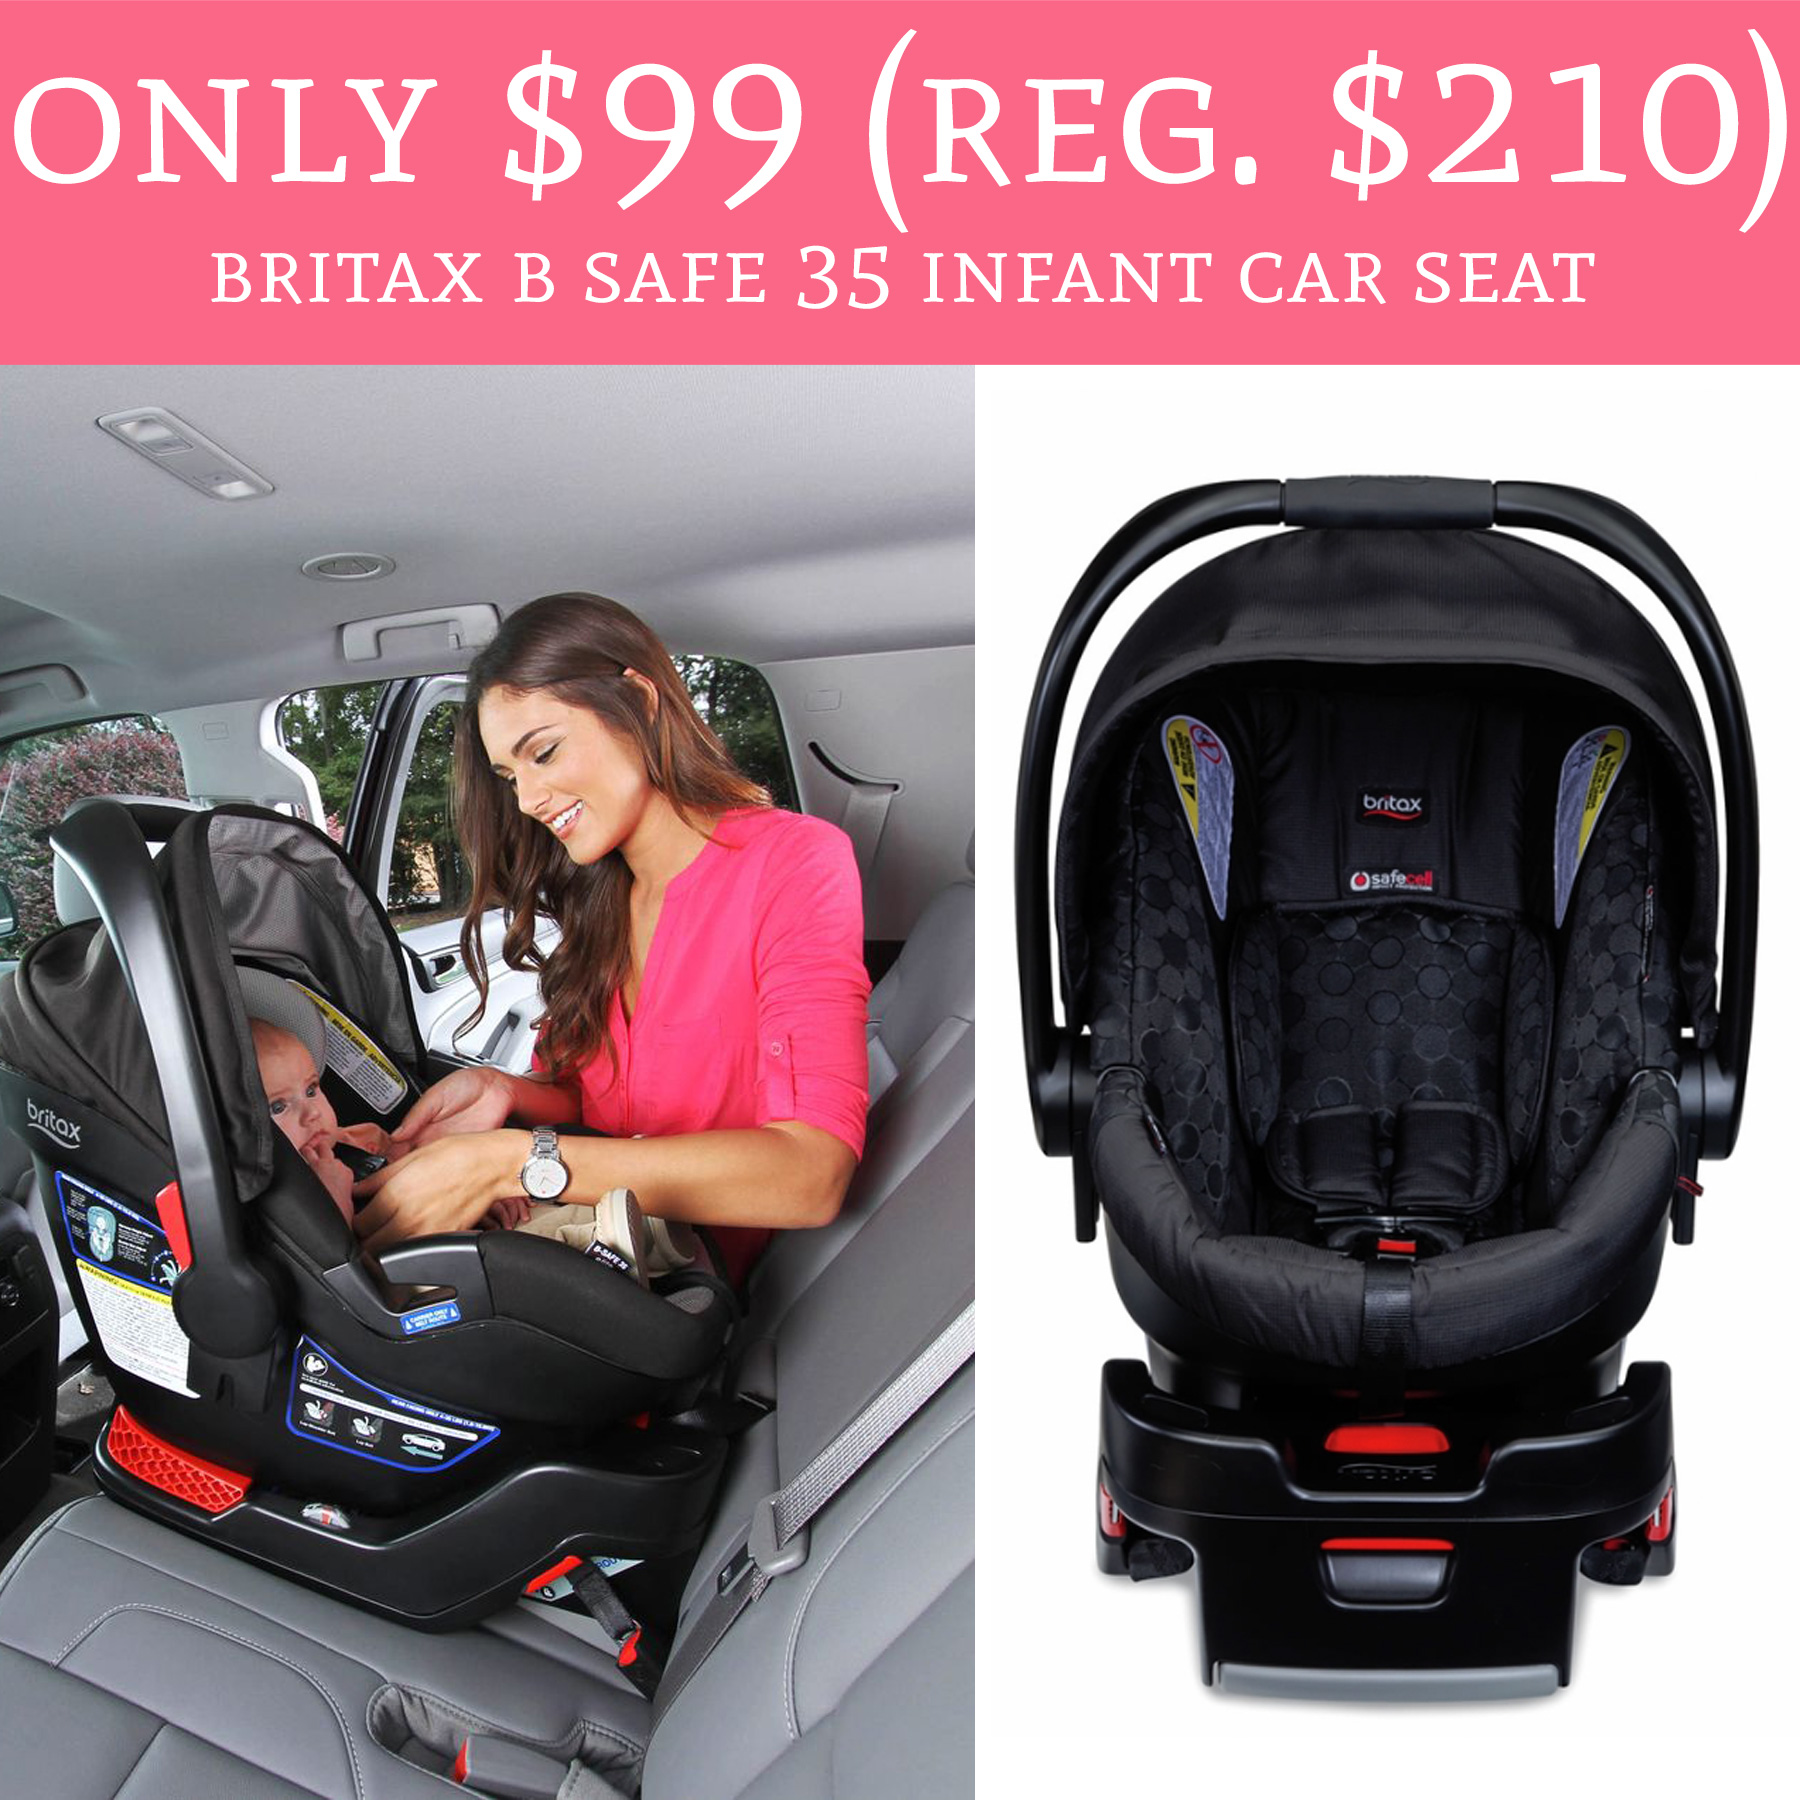 Calling All Parents And To Be Head Over Amazon Where You Can Score Britax B Safe 35 Infant Car Seat